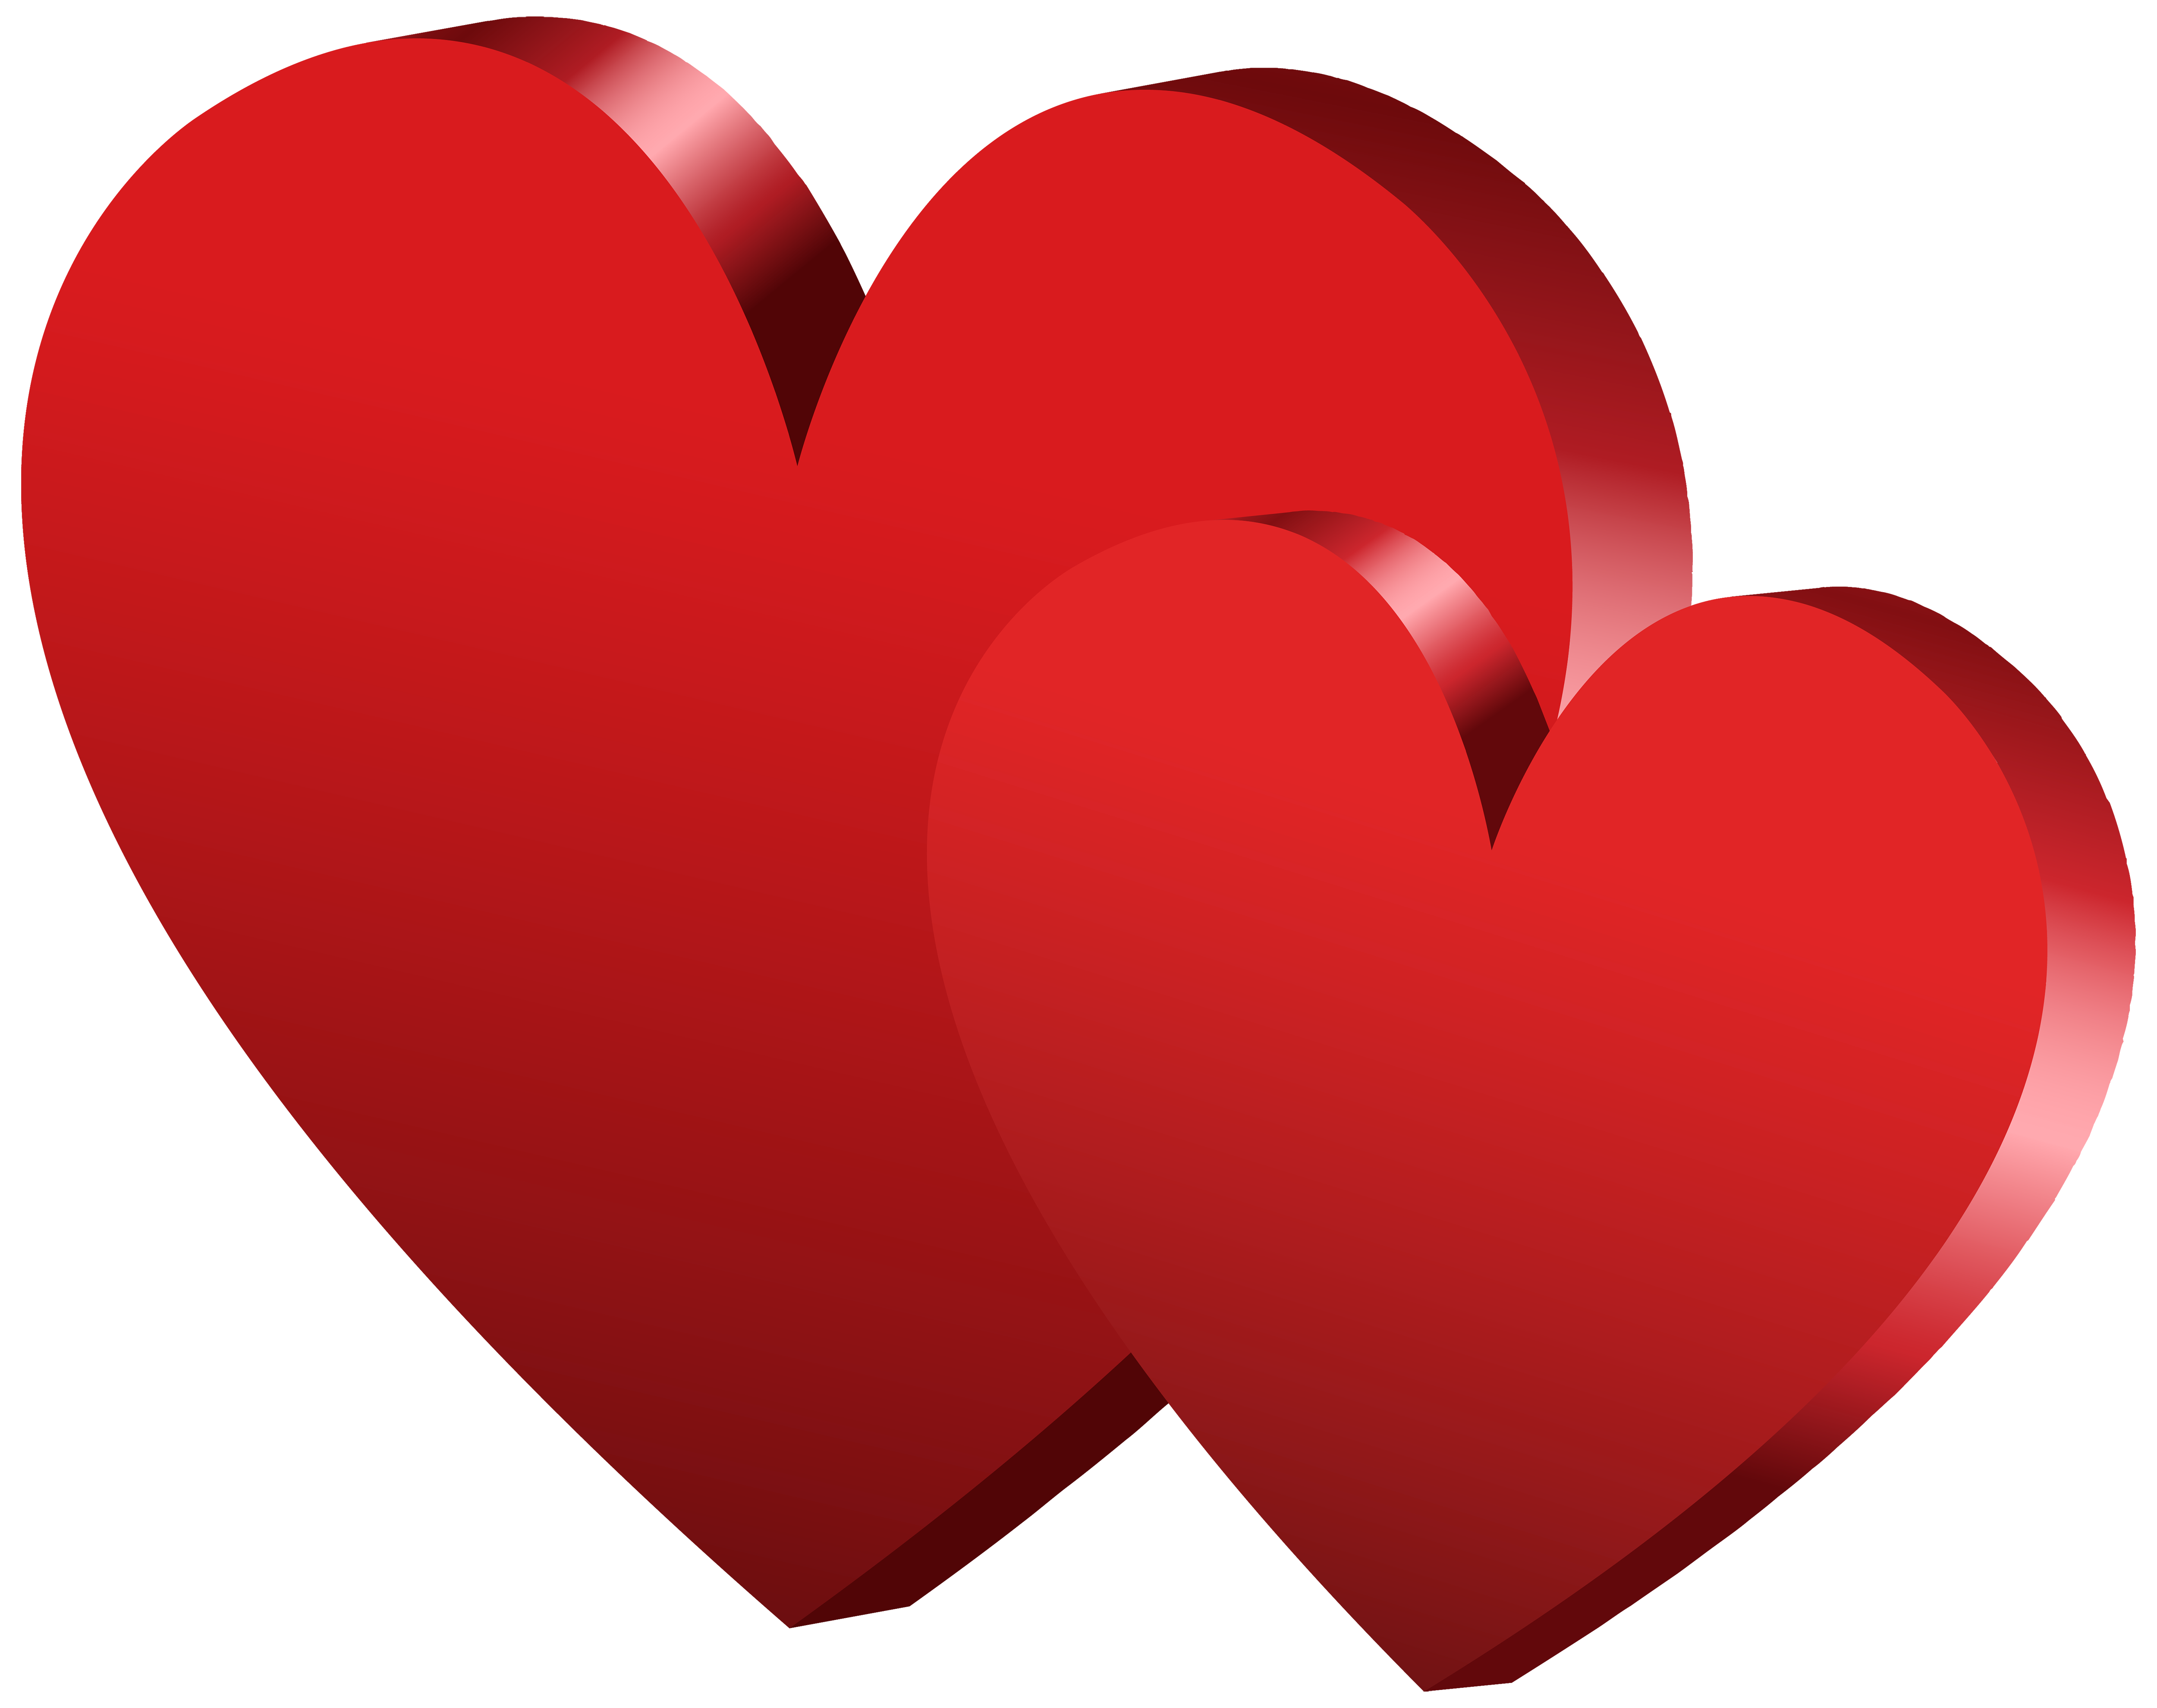 Red png best web. Hearts clipart vegetable